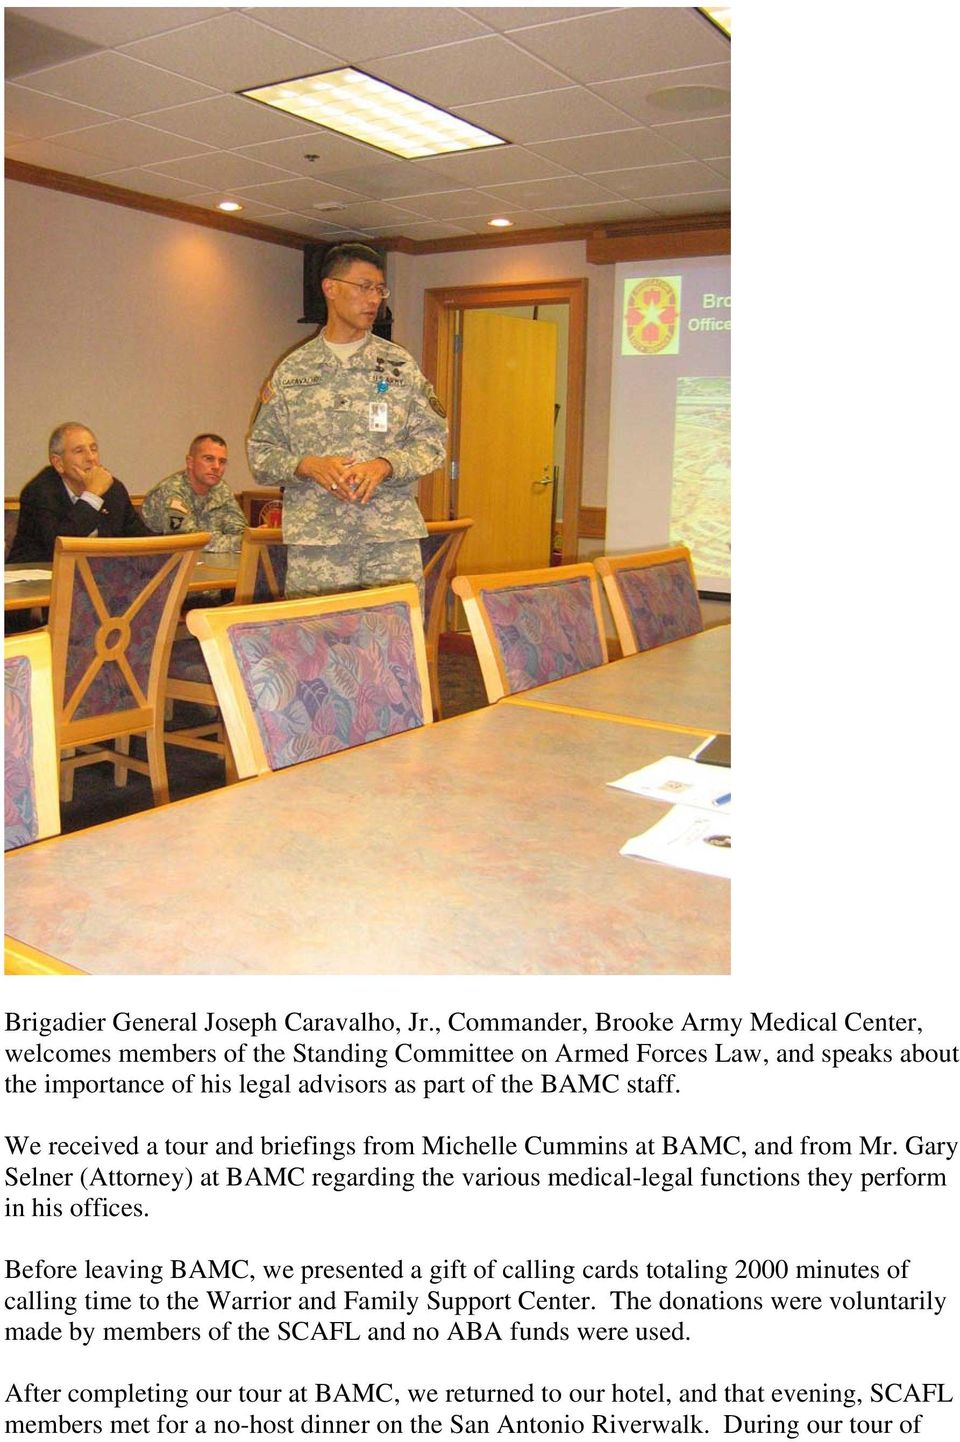 We received a tour and briefings from Michelle Cummins at BAMC, and from Mr. Gary Selner (Attorney) at BAMC regarding the various medical-legal functions they perform in his offices.